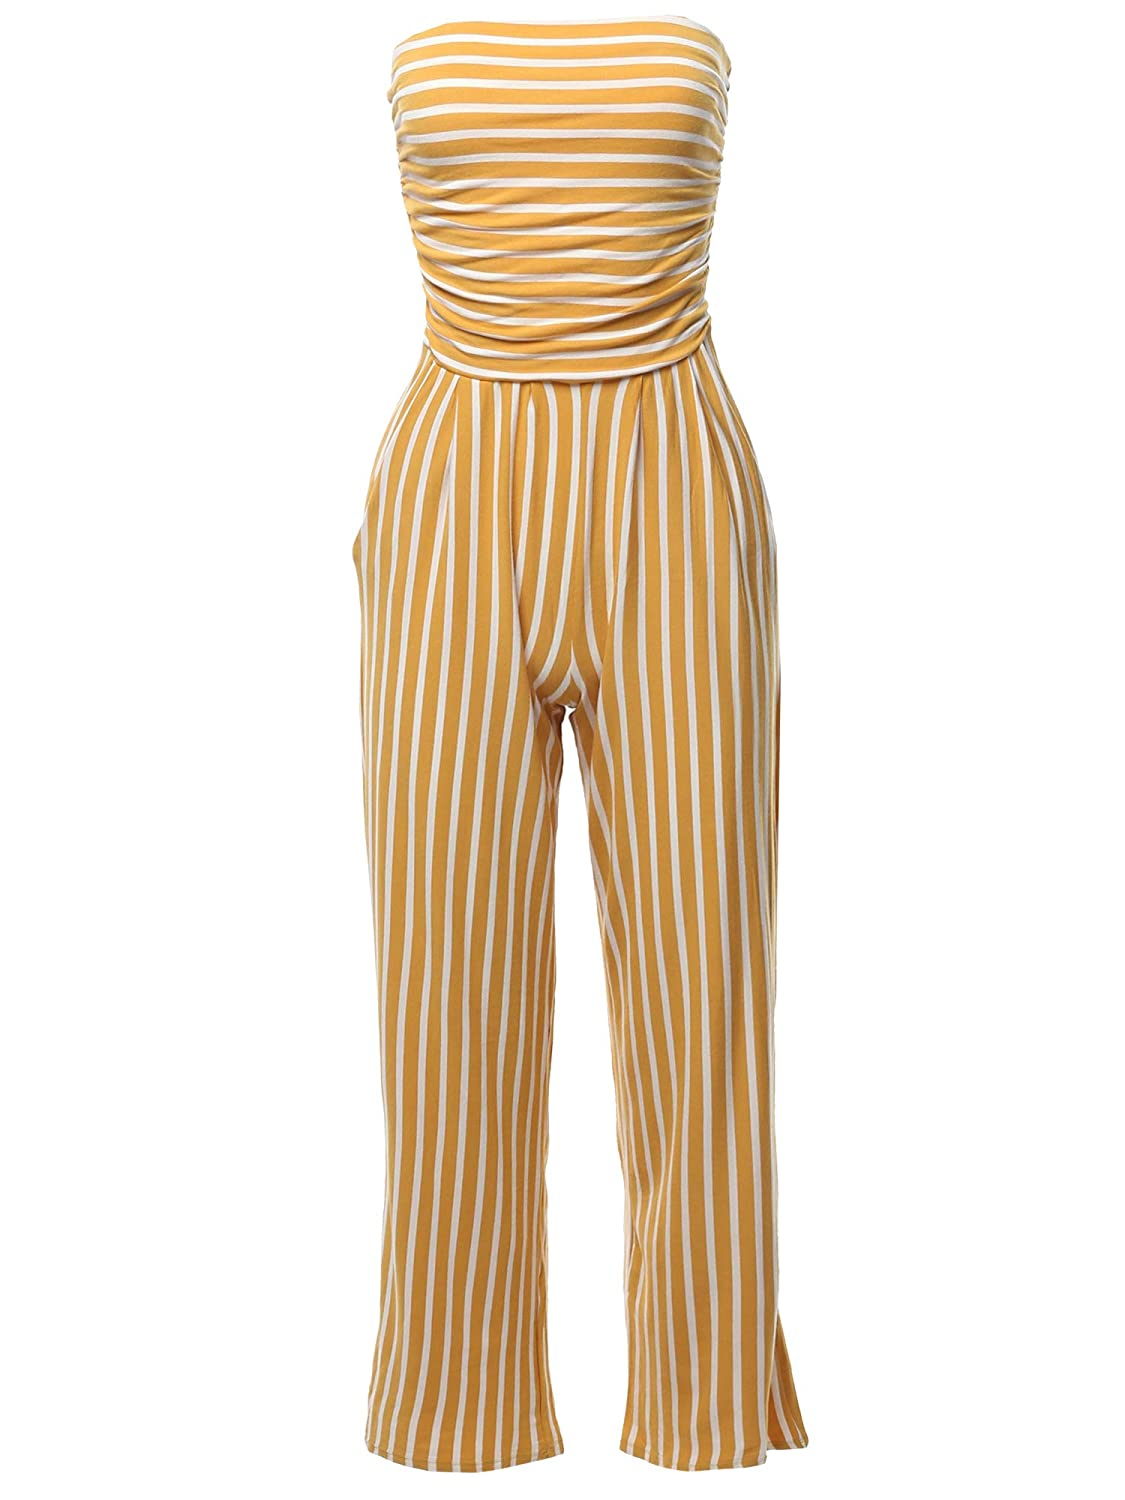 Made by Emma Womens Casual Palazzo Stripe Tube Romper Jumpsuit